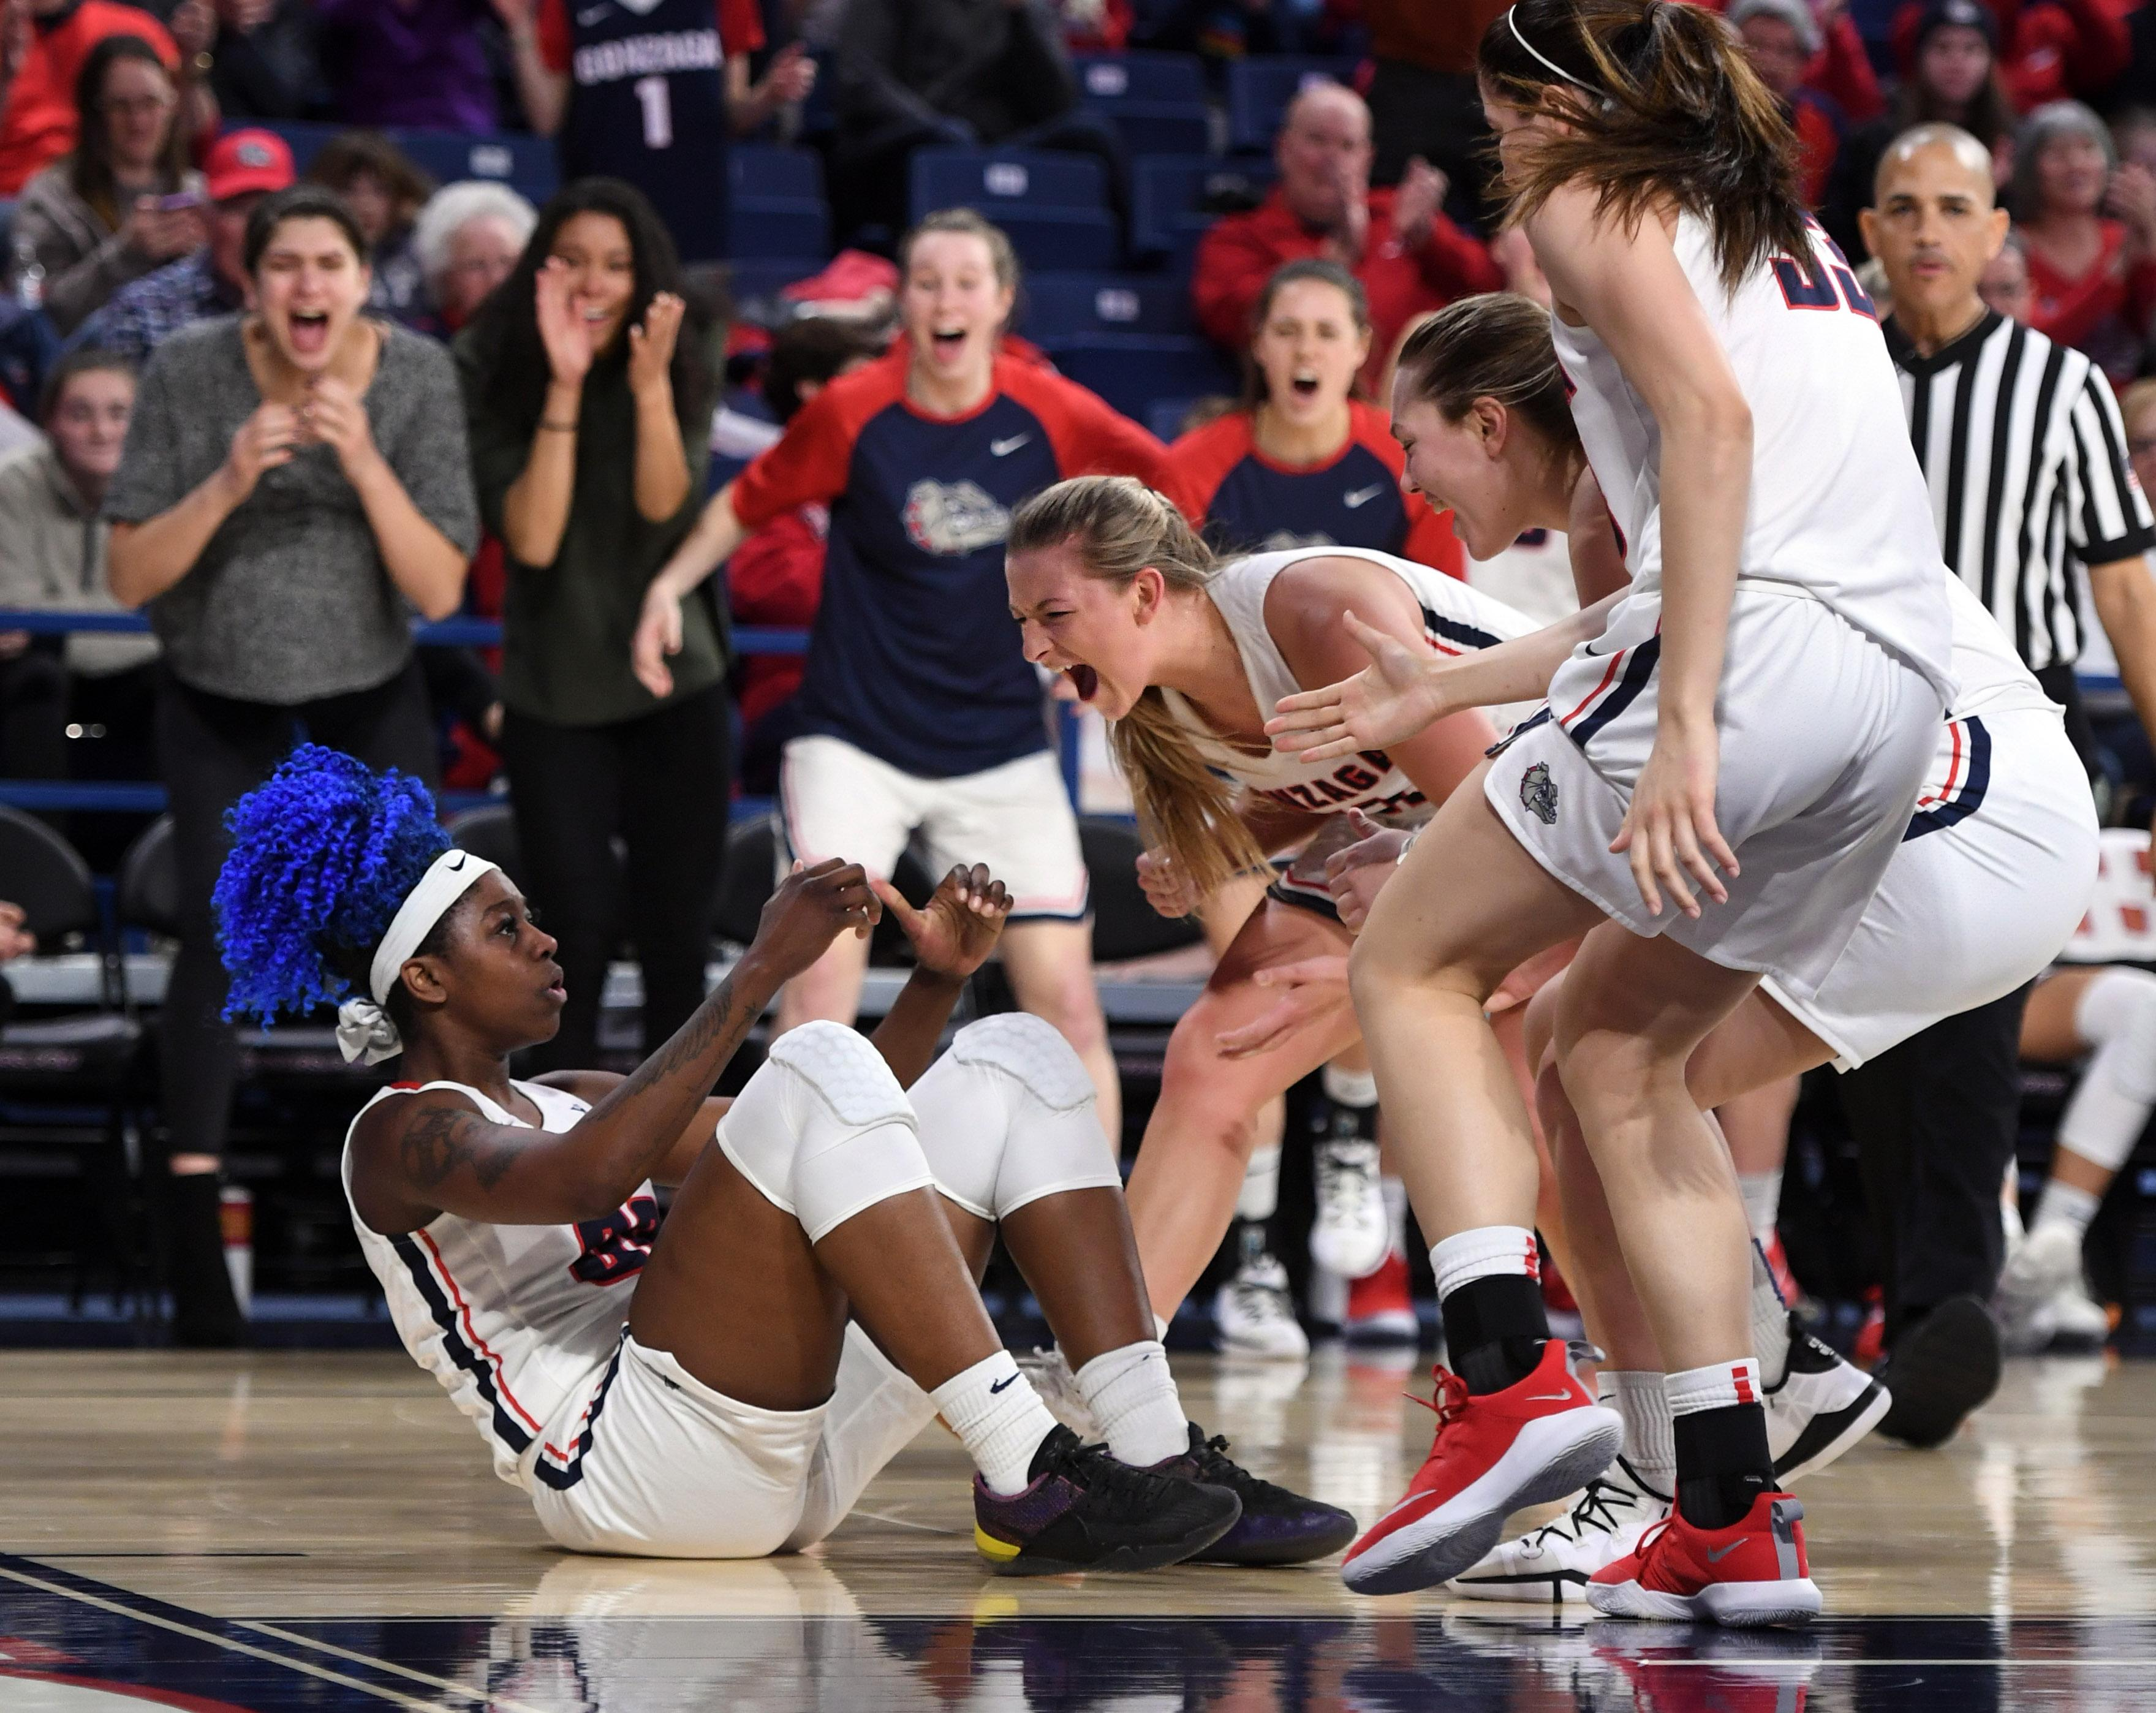 new york e892b 2e2fb Gonzaga forward Zykera Rice is fouled after a basket during the second half  Thursday in the